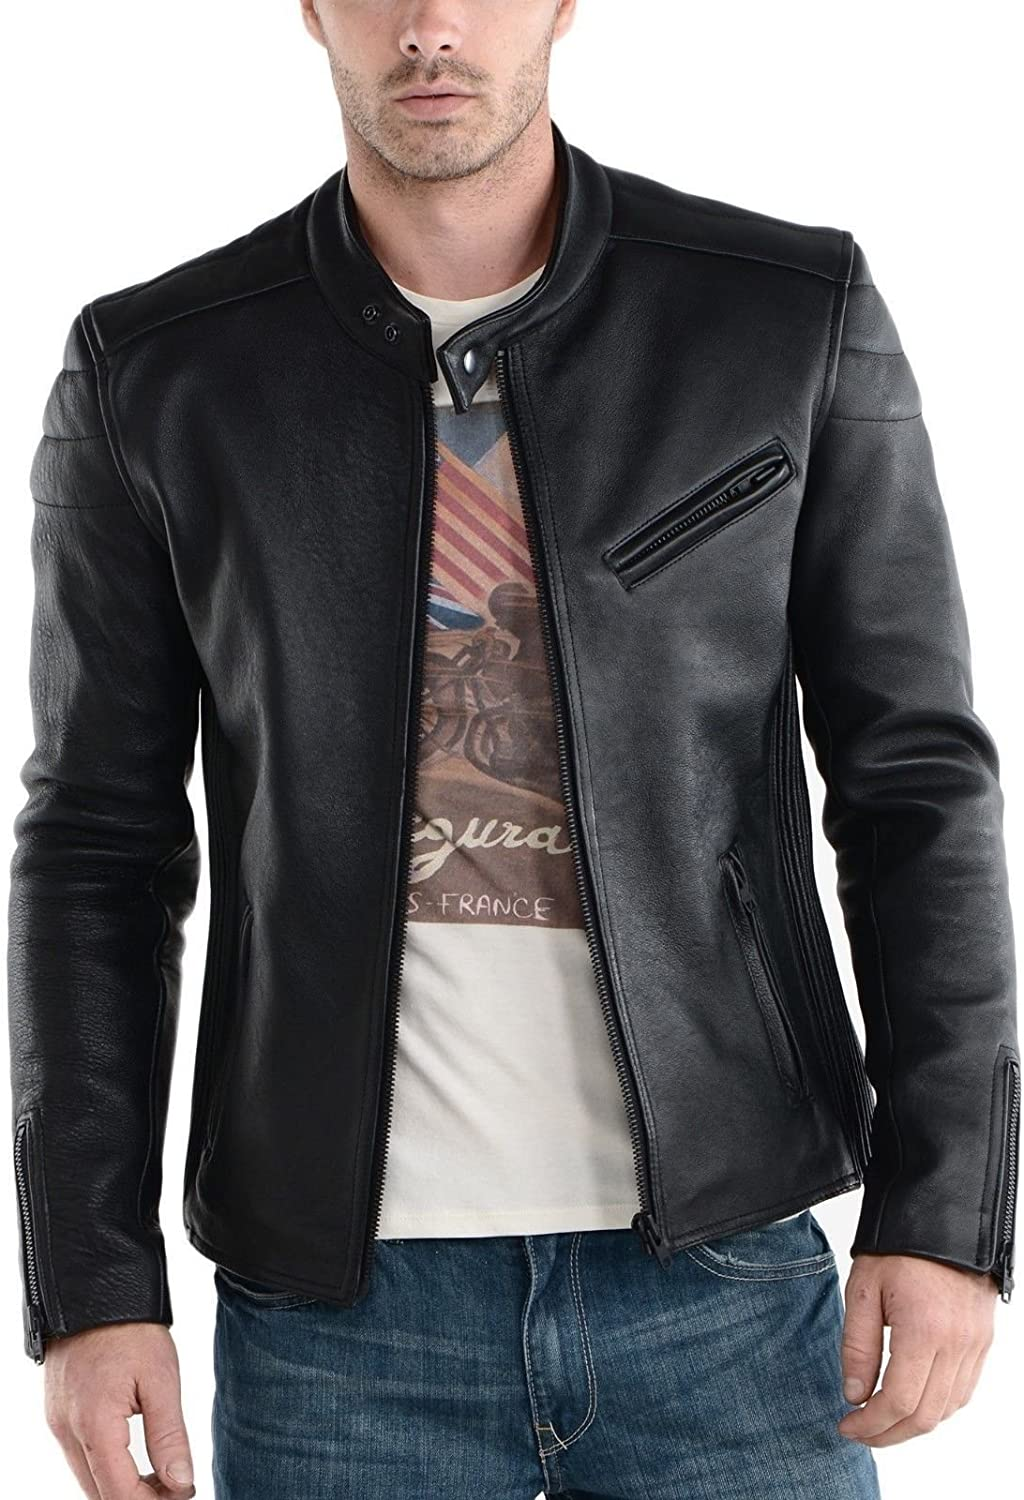 S Mariyam Leather Mens Leather Jacket Black Slim Fit Biker Motorcycle Genuine Lambskin Coat